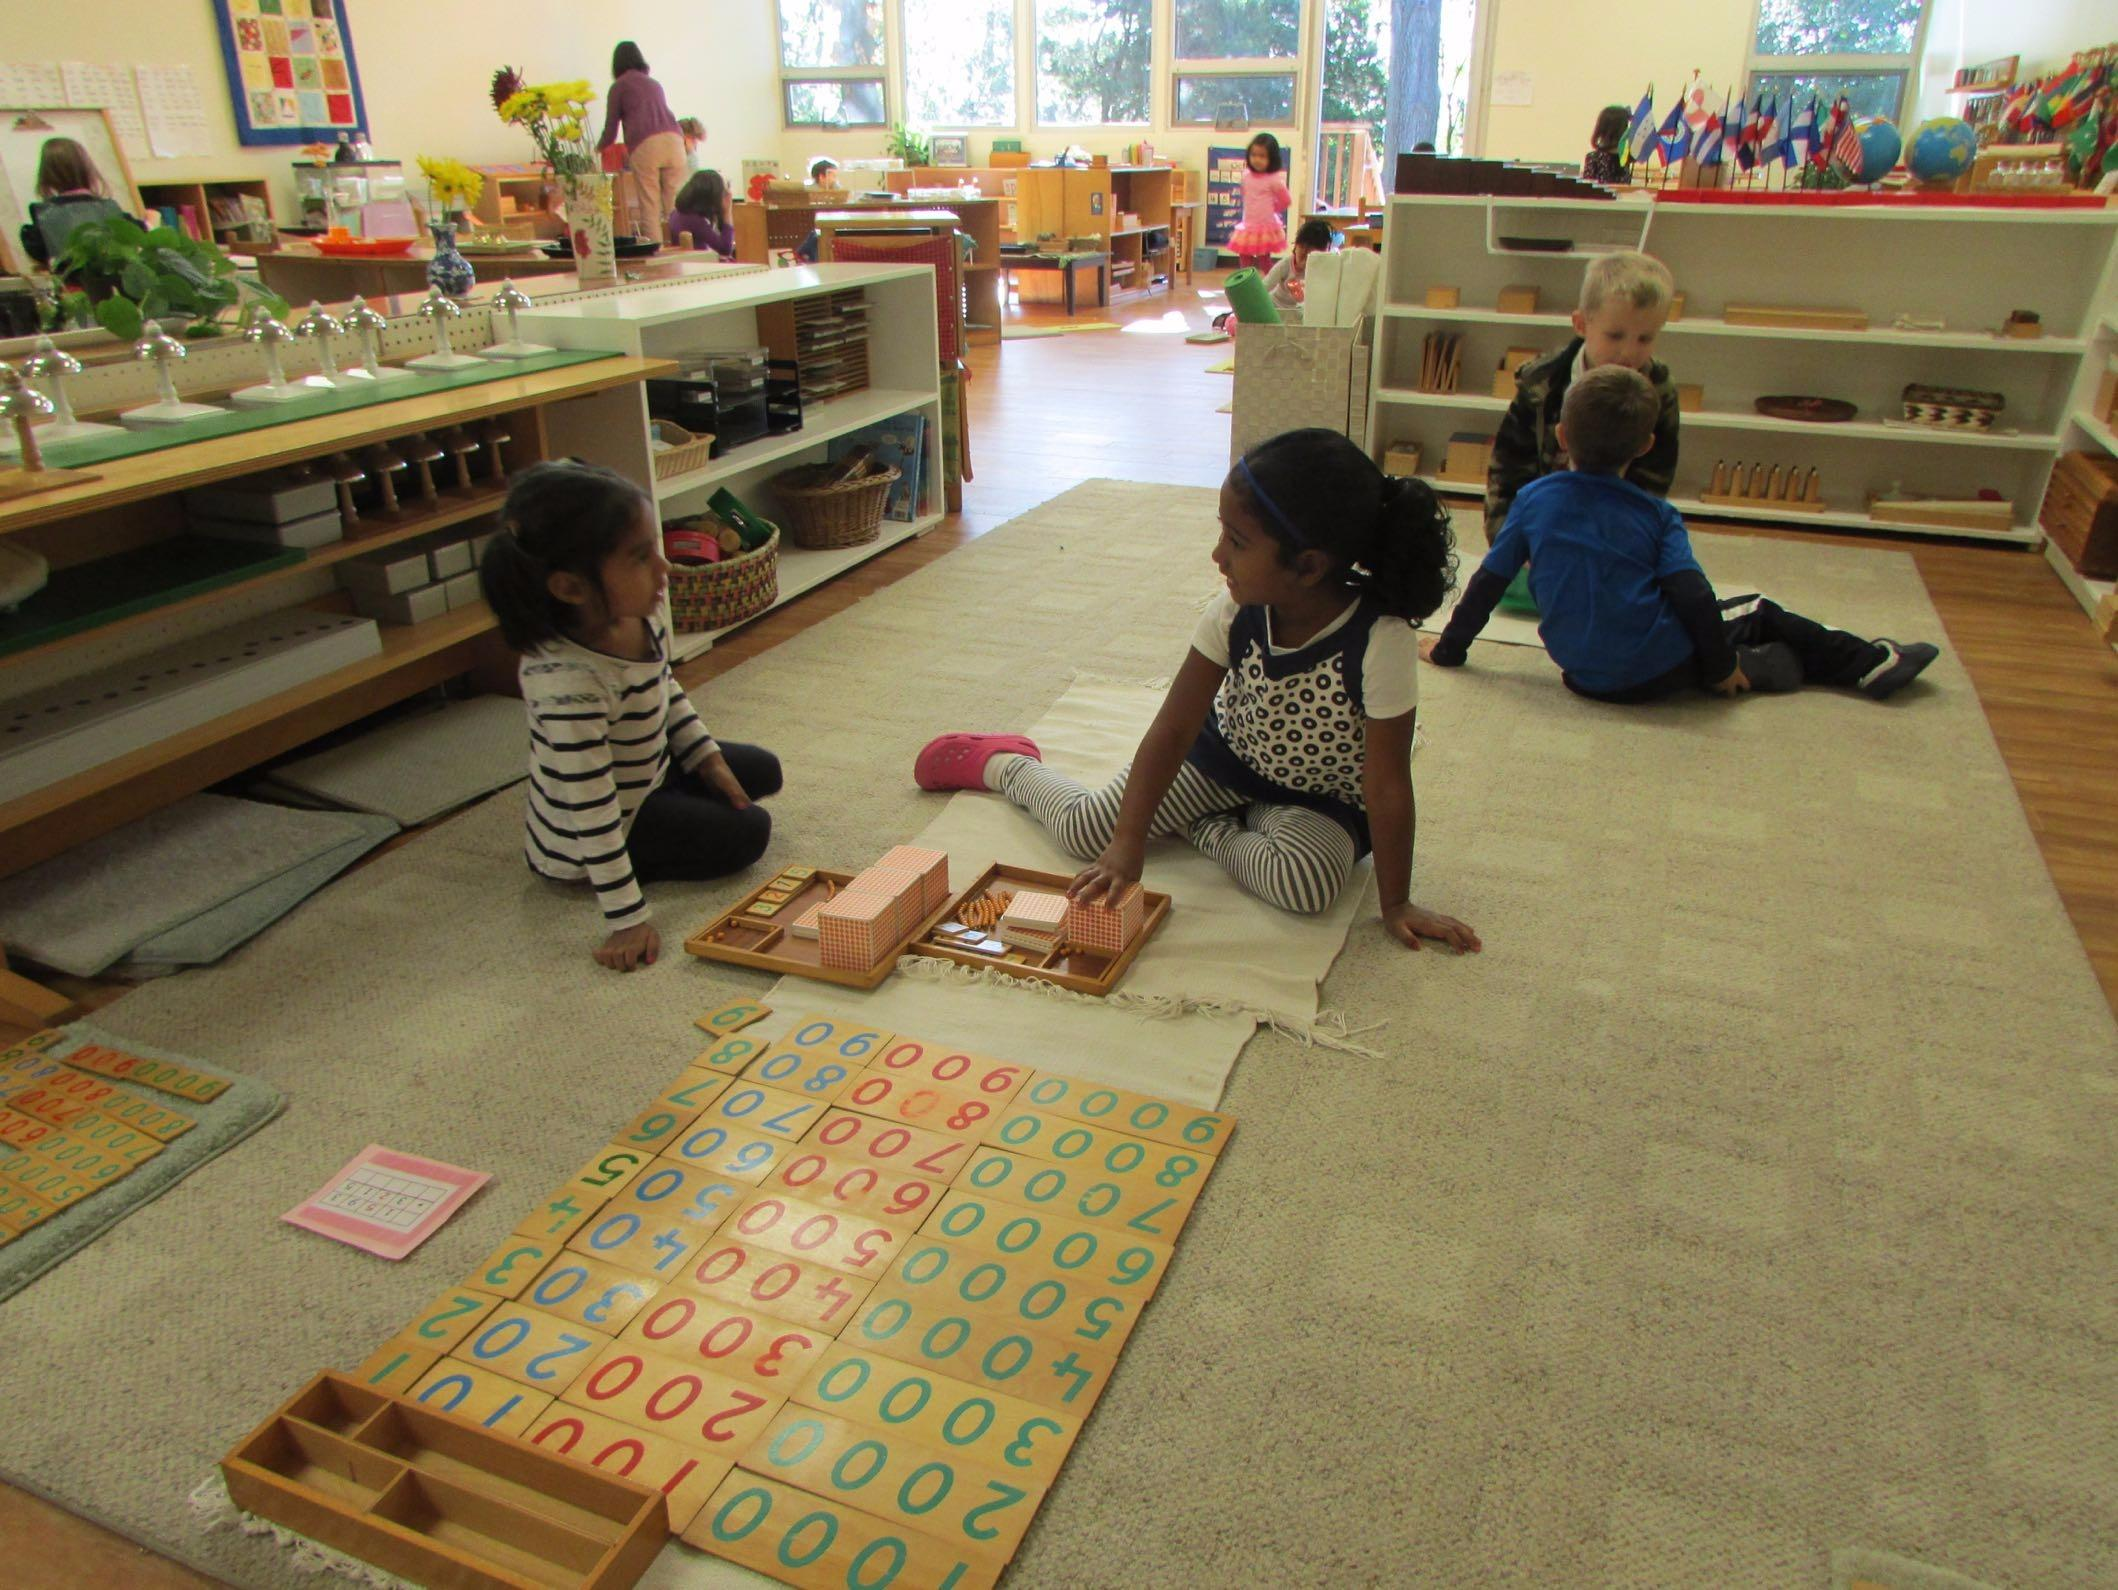 how montessori incorporated the development of As an educational approach, the montessori method focuses on the individuality of each child in respect to their own needs and talents the child controls the pace, topic and repetition of lessons independent of the rest of the class.